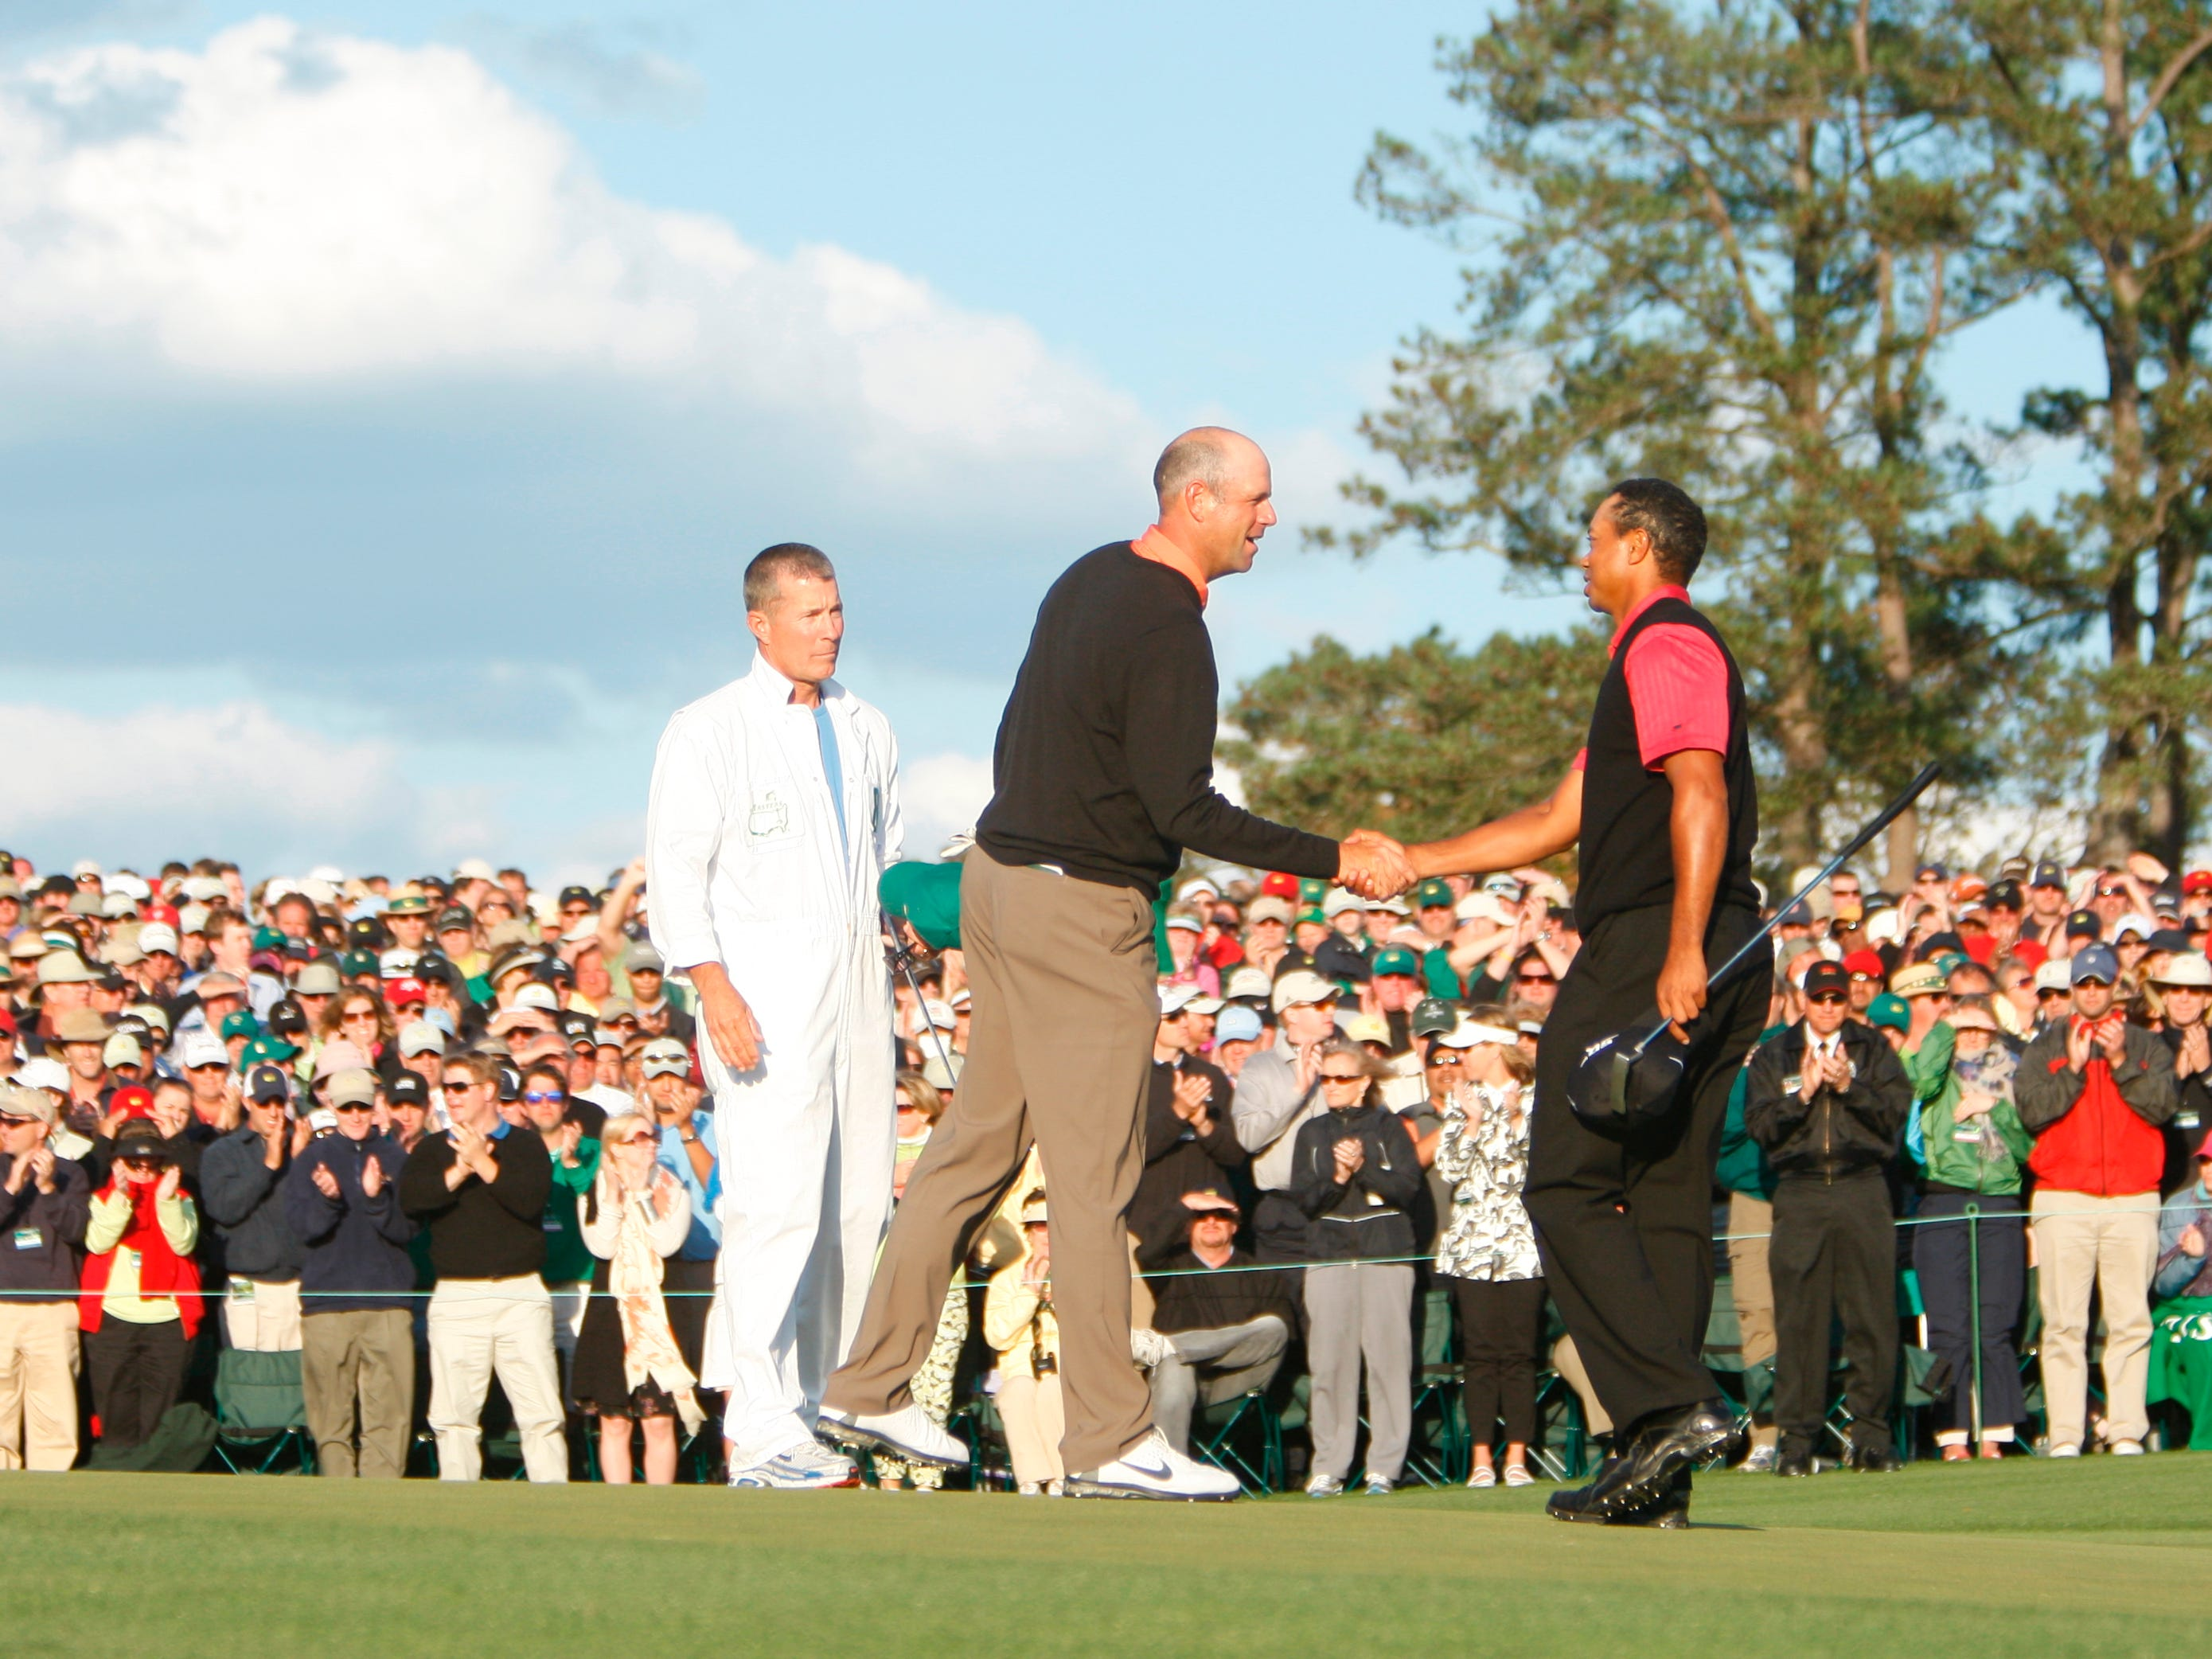 Two days after a runner-up finish at the Masters, Tiger Woods has arthroscopic surgery to repair cartilage damage. Here he's shown at the Masters with Stewart Cink.